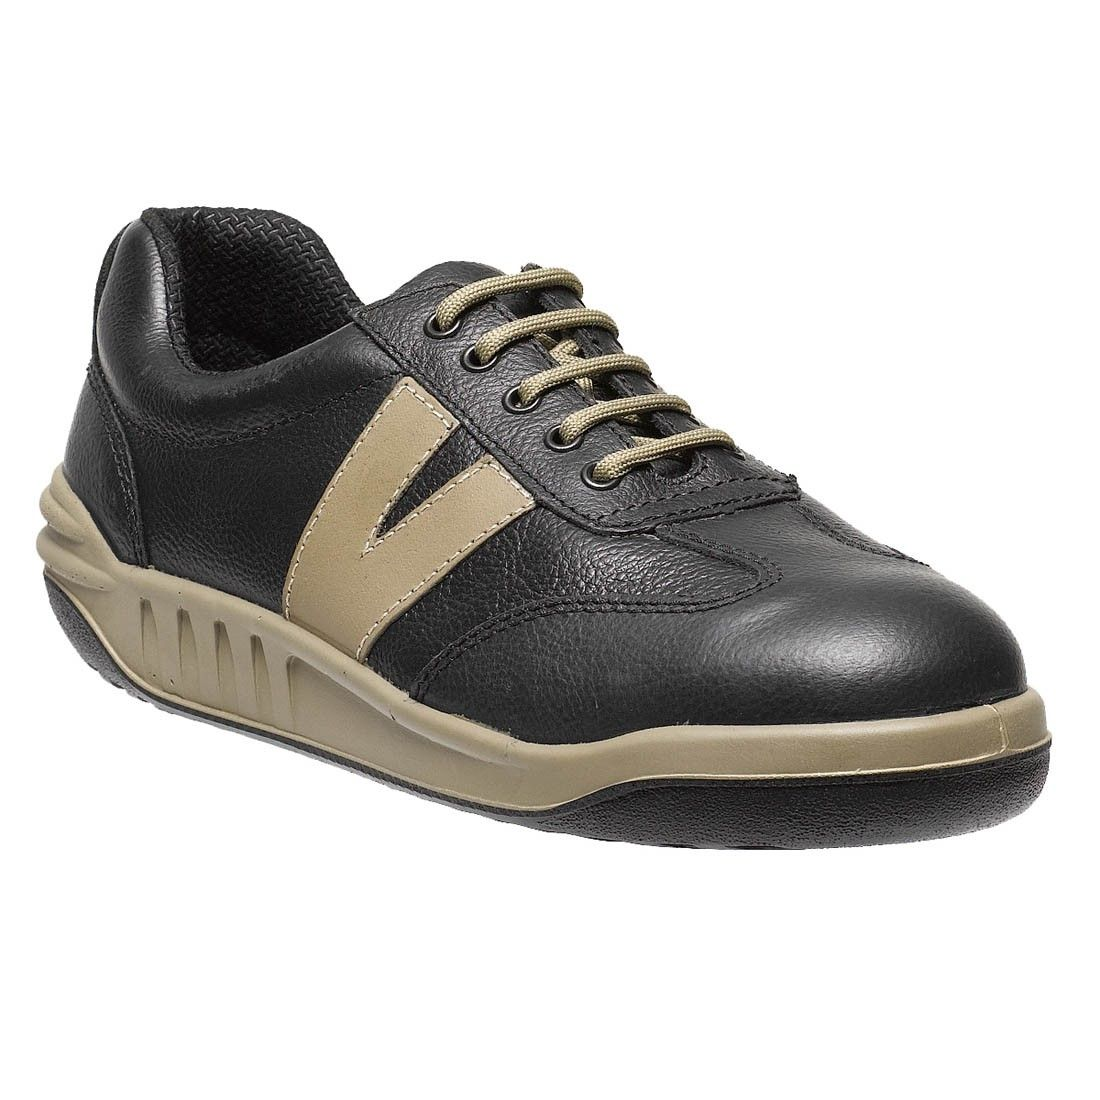 d192fdefc39 Parade Footwear Jud Black Leather Contrast S2 Unisex Safety Trainers ...